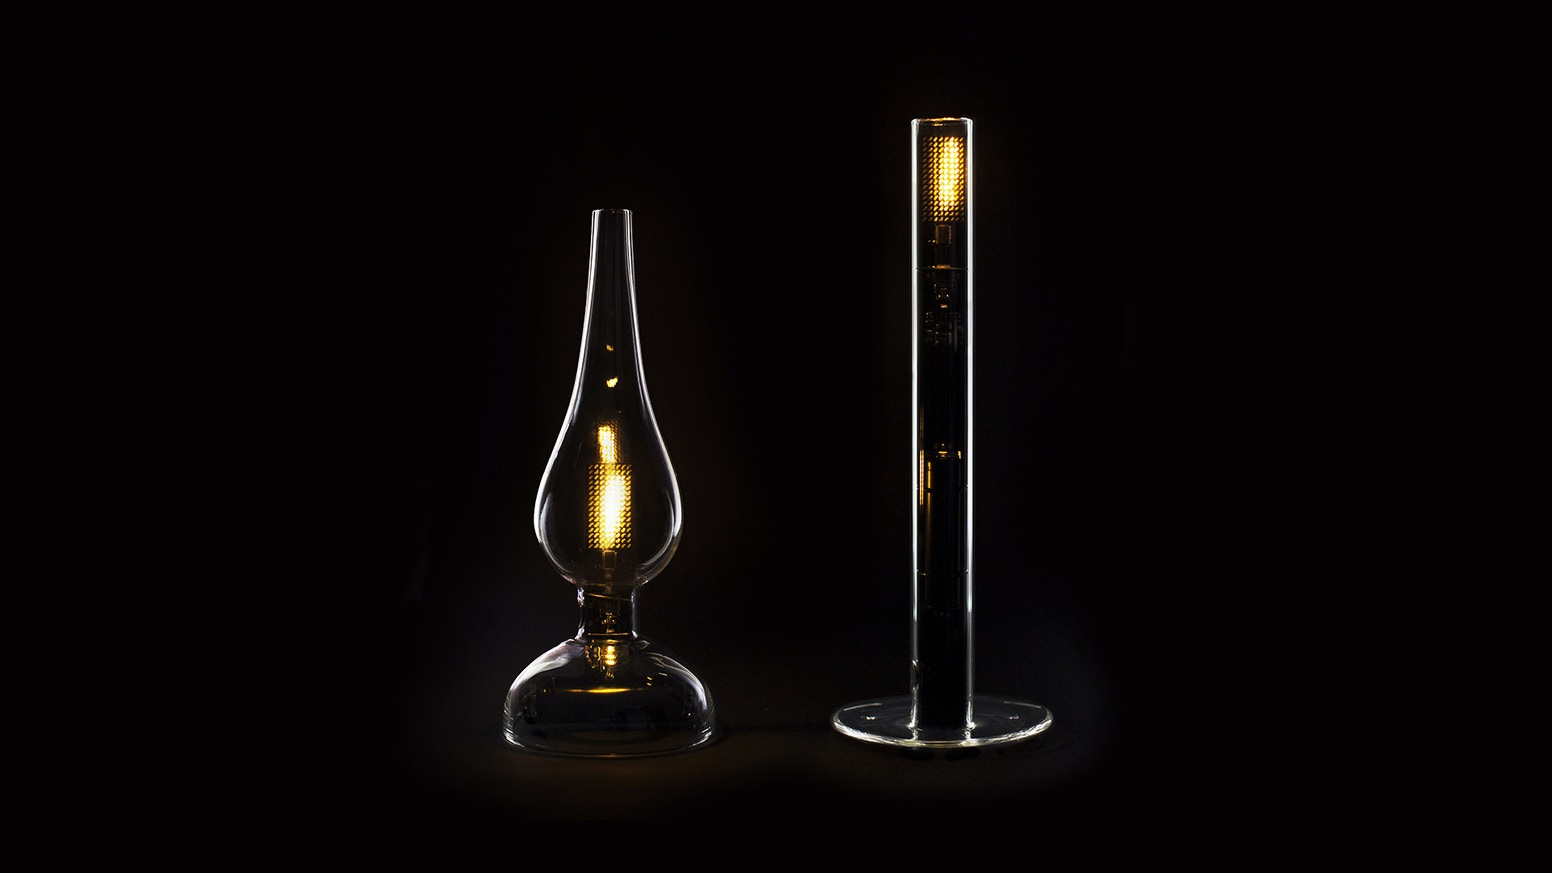 Led Candles By Morilondon Moritz Waldemeyer Kickstarter Circuits Flickering Candle